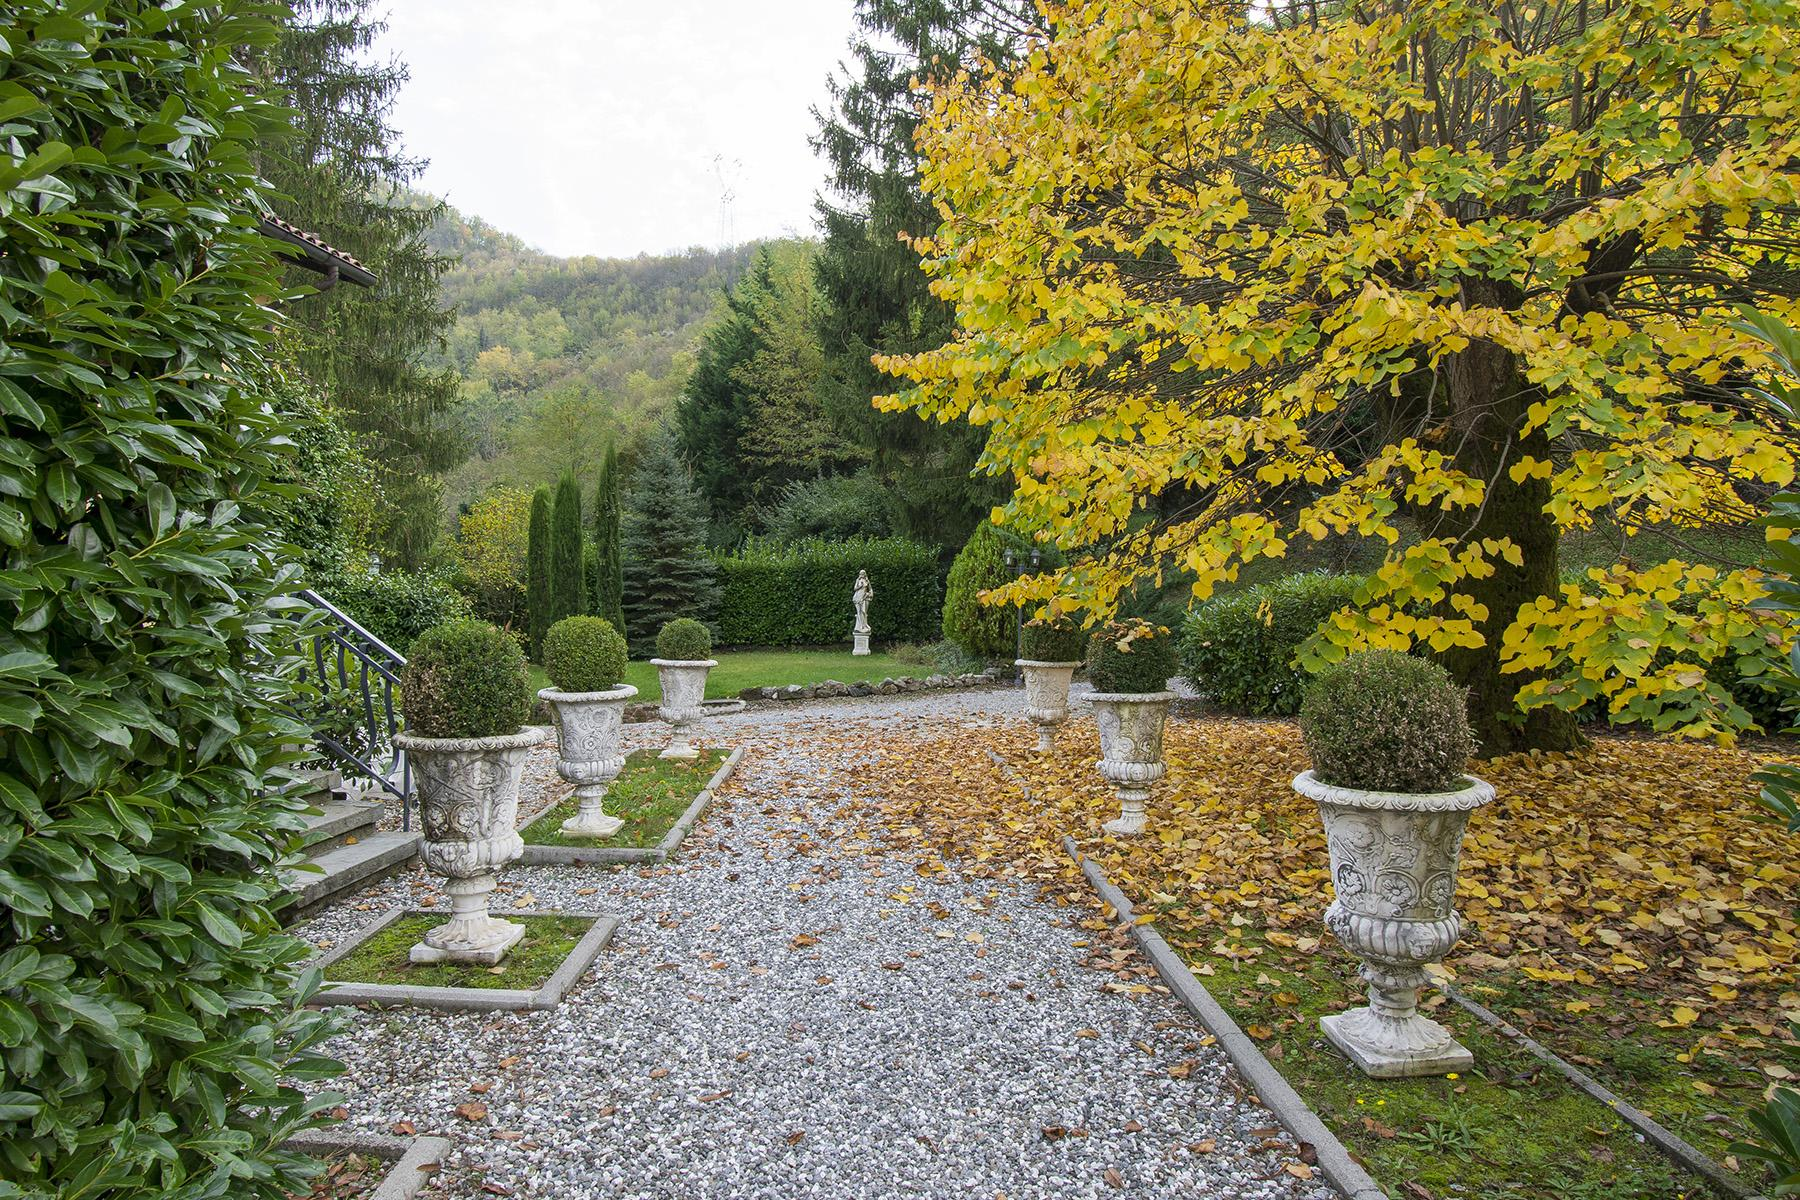 Luxury Renaissance Villa on the hills of Garfagnana Region - 28